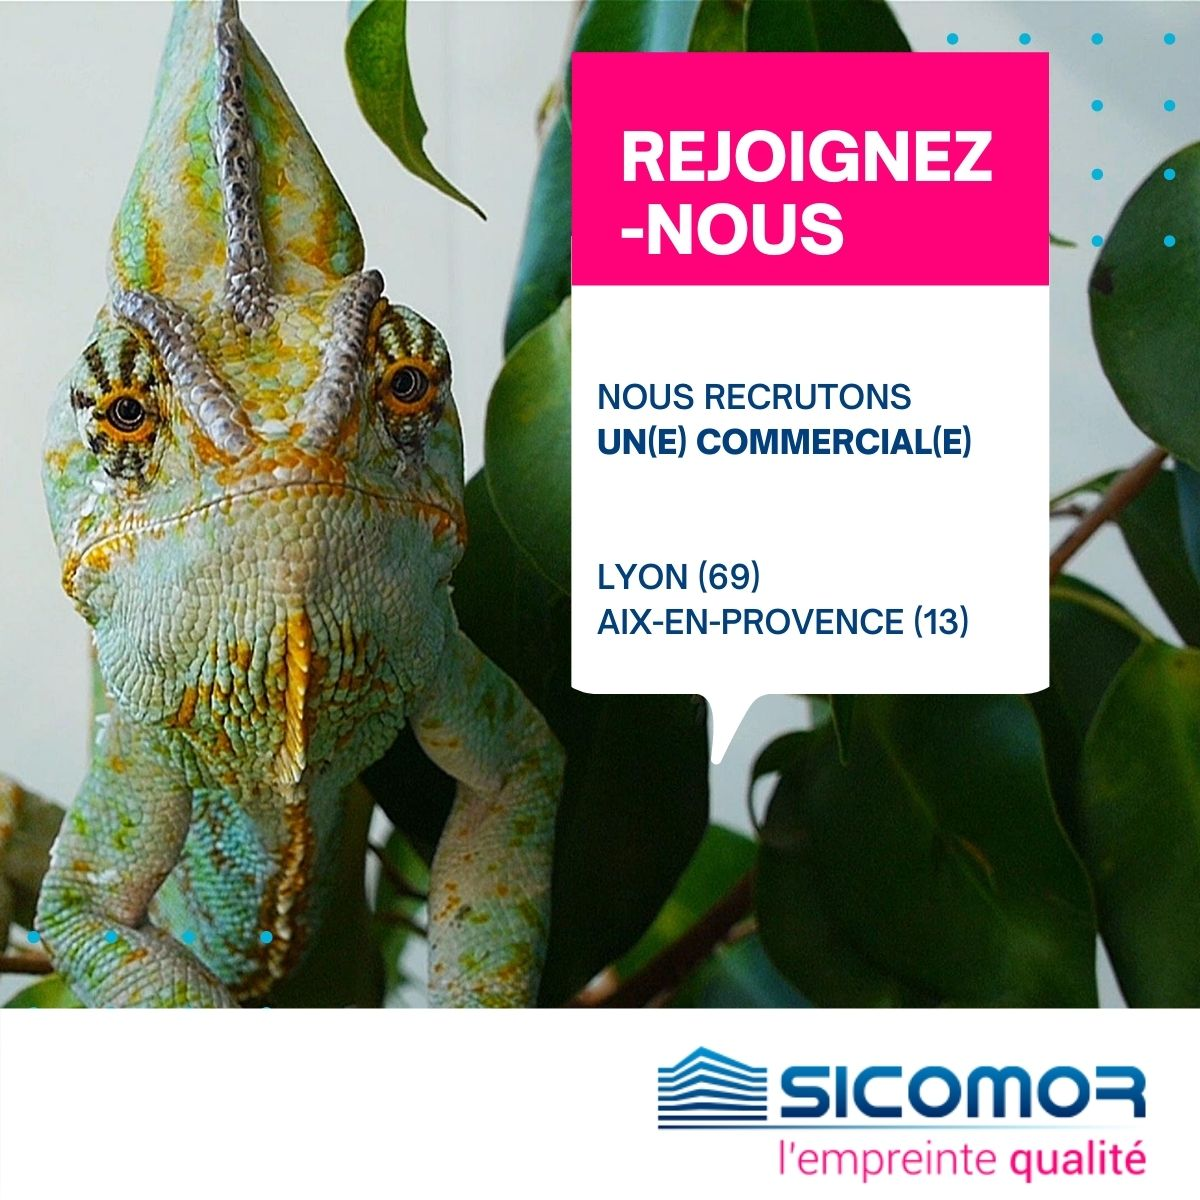 Image recrutement commercial